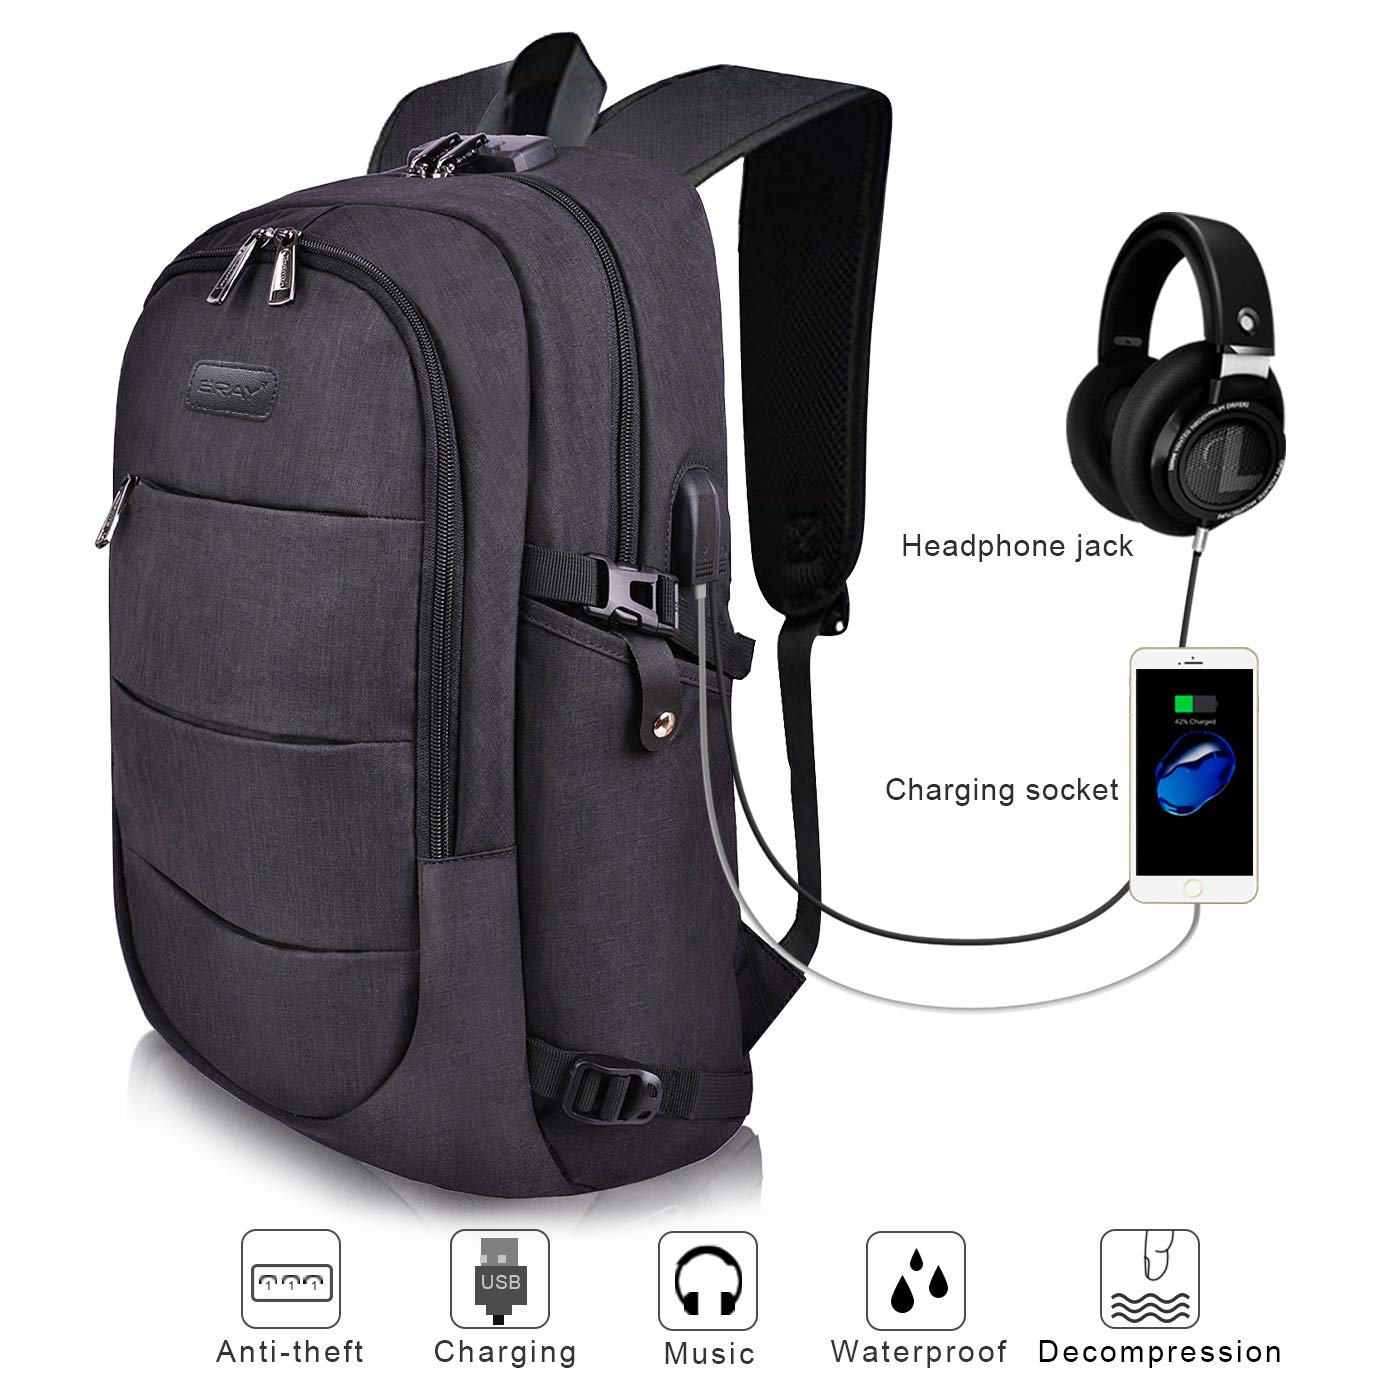 ERAY Laptop Backpack, Business Anti Theft Backpacks with USB Charging Port and Headphone Port fits 15.6 Inch Backpack for Men & Women (15.6'' Upgrade Black)